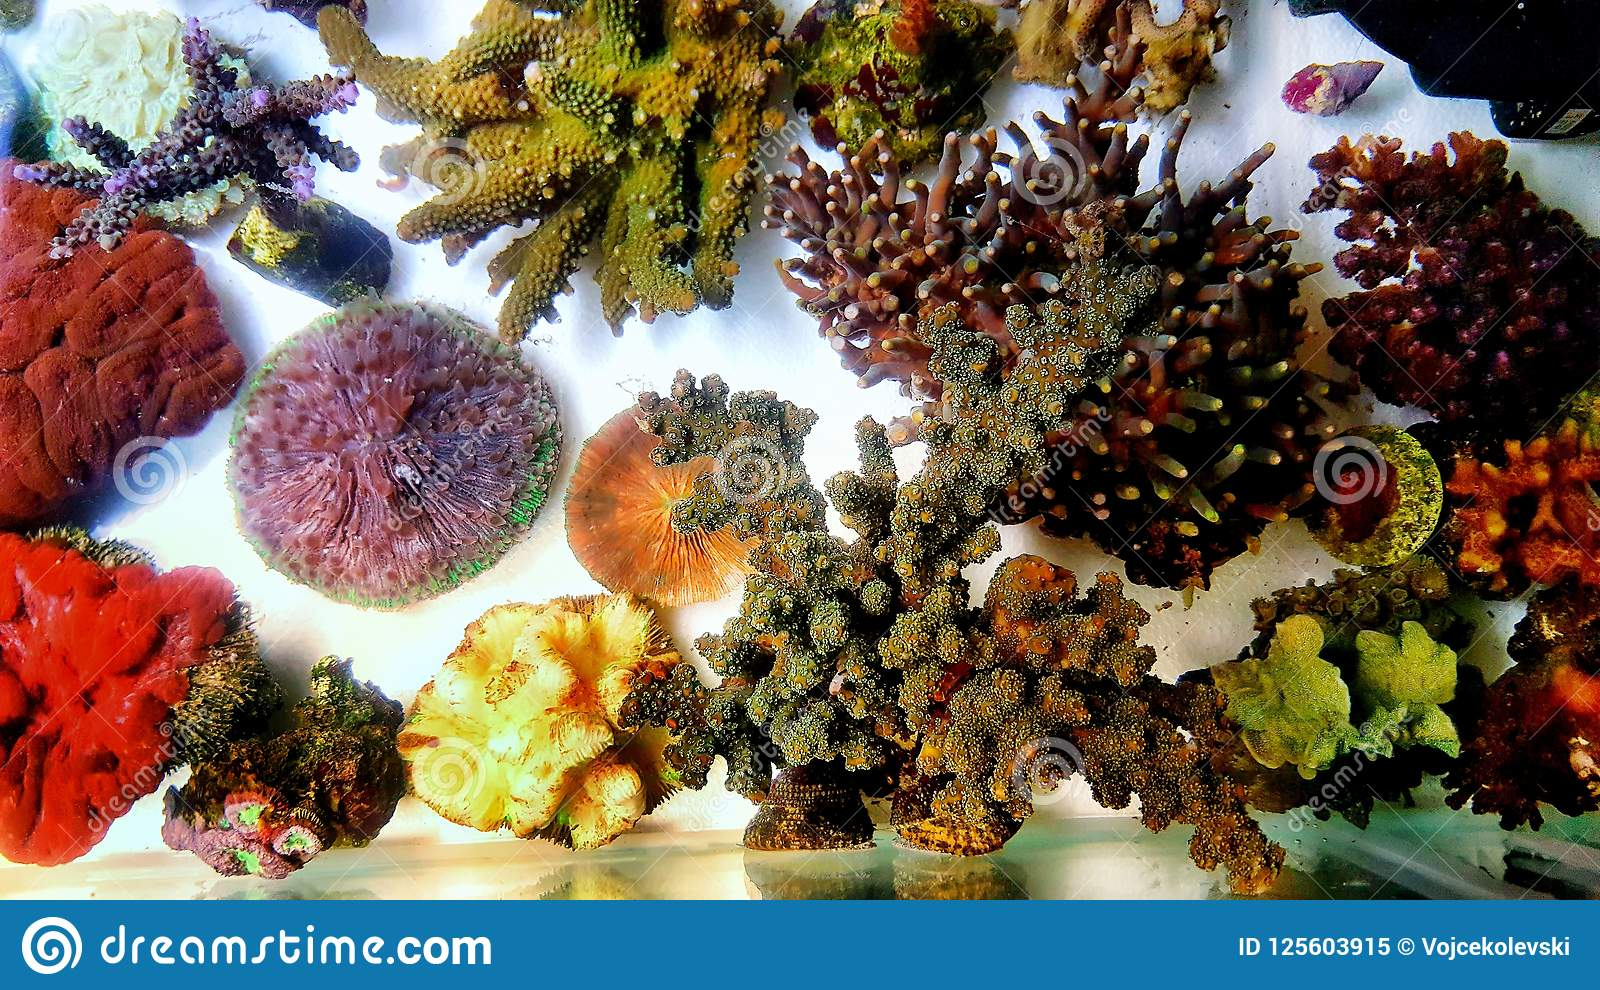 Saltwater Coral Reef Aquarium Fish Tank Is One Of The Most Beautiful